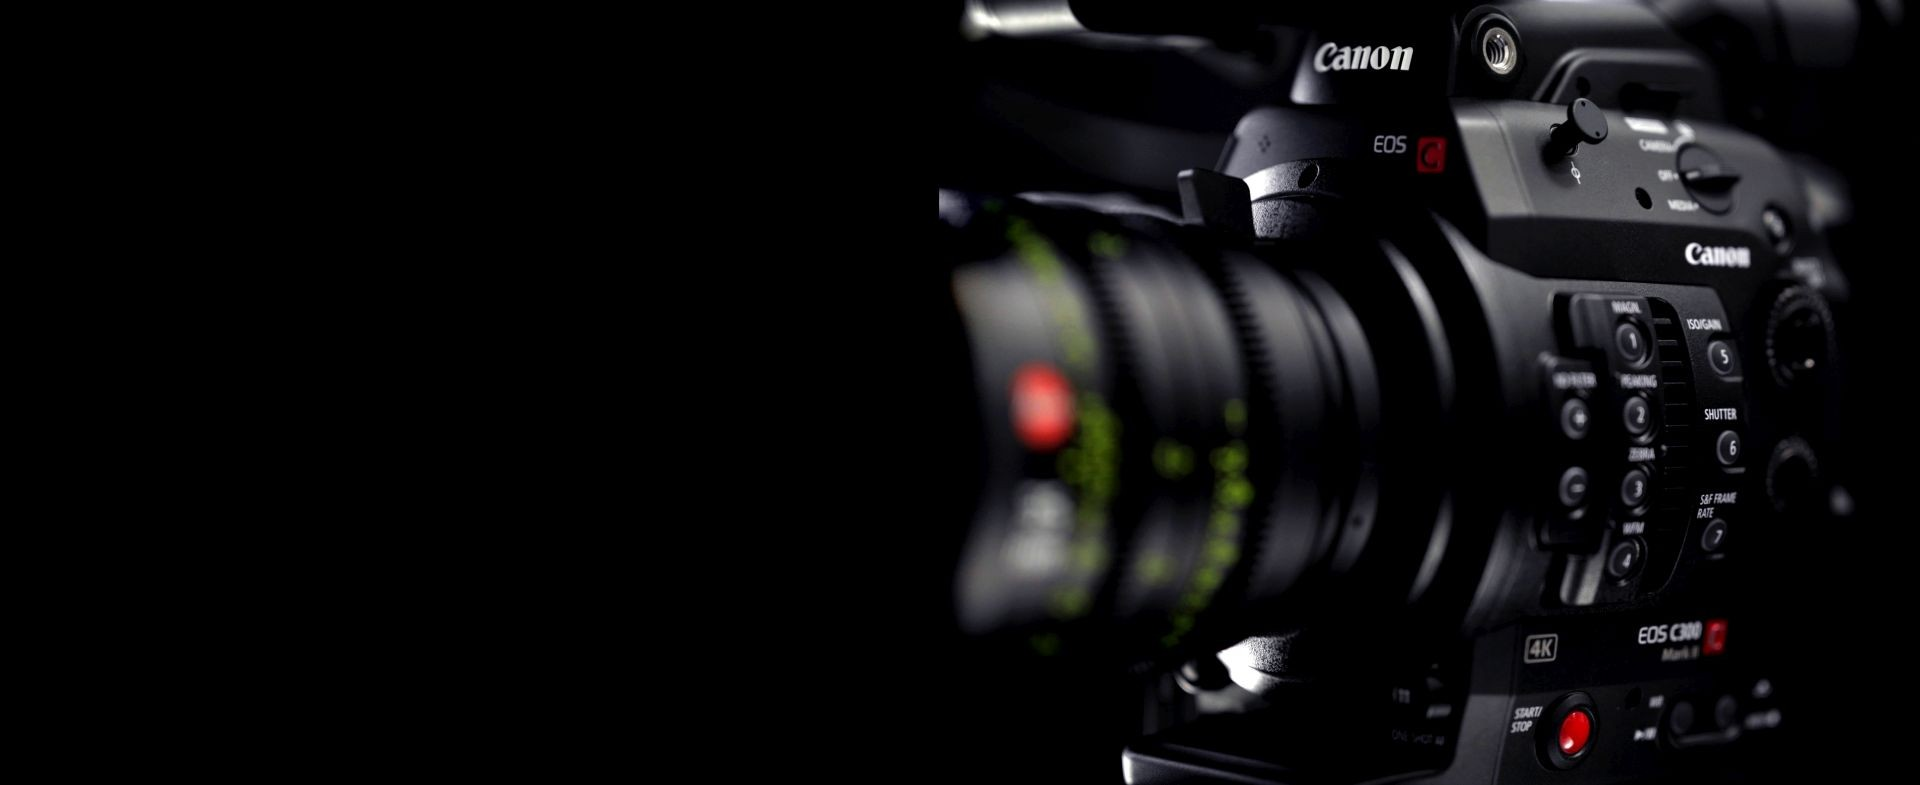 Canon EOS C100 DAF, C300 DAF, and C300 Mark II (PL) Cameras